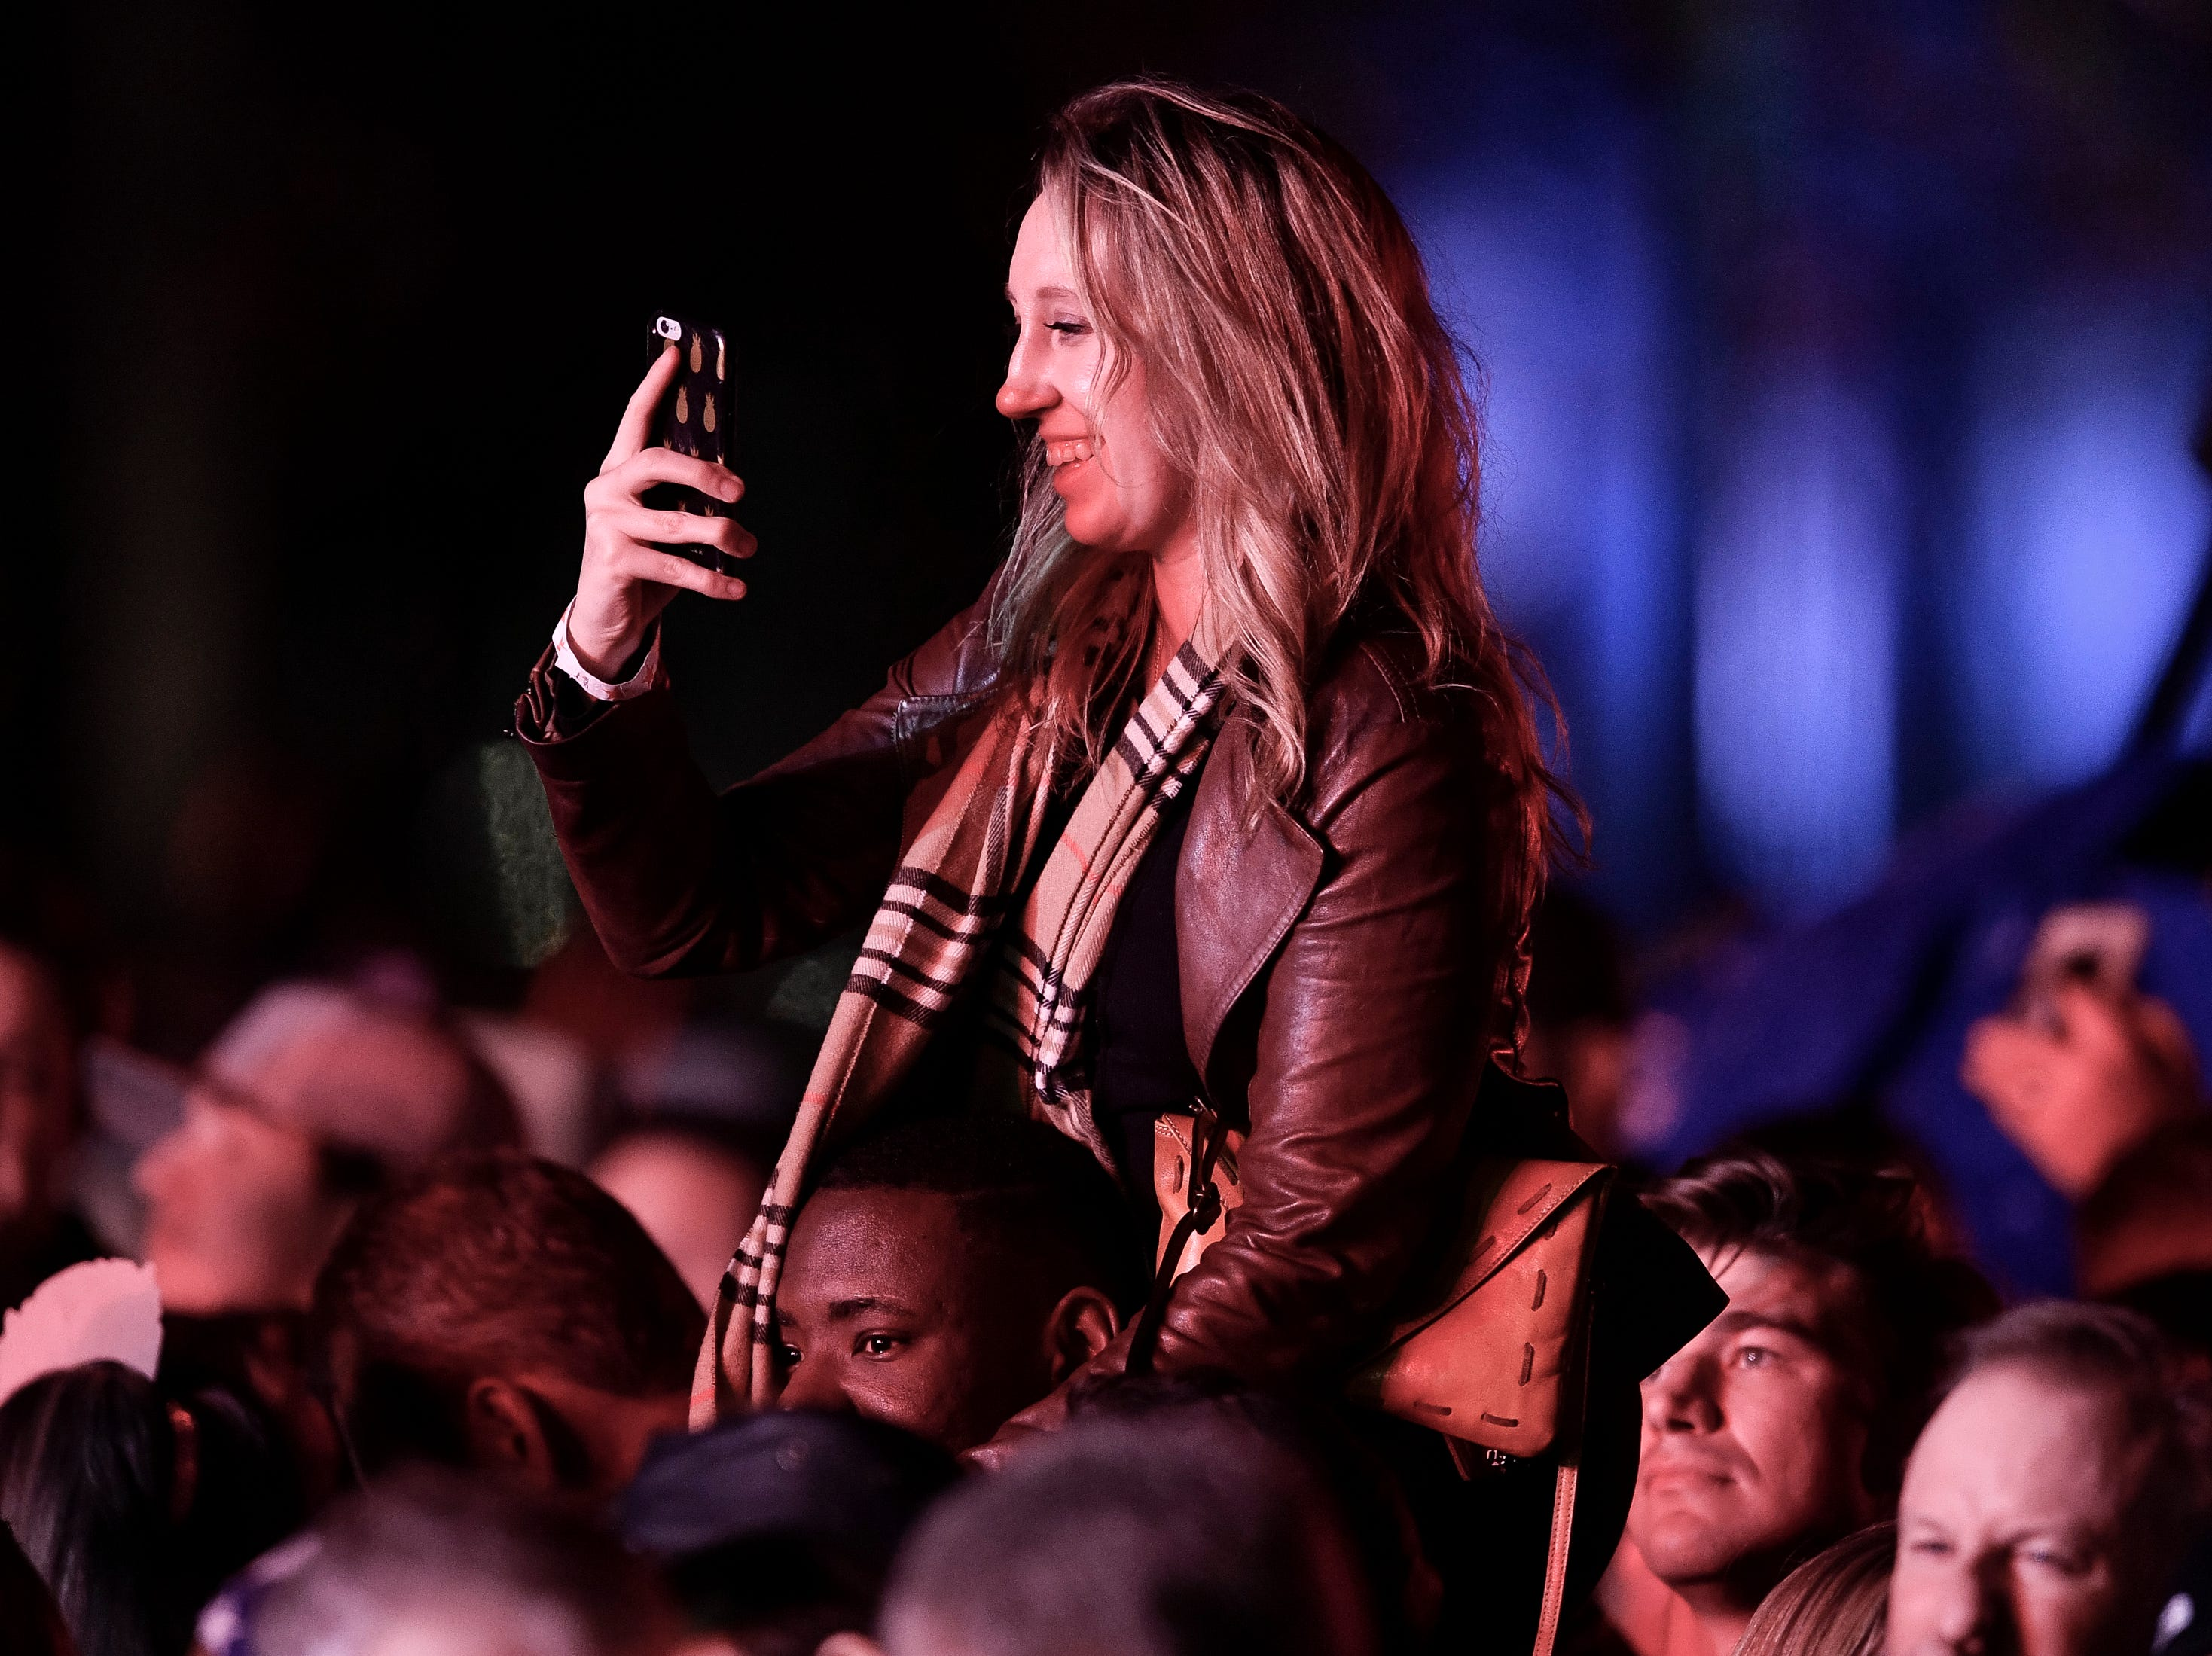 A fan waits for Peter Frampton to take the stage during the Jack Daniel's Music City Midnight: New Year's Eve event at Bicentennial Capitol Mall State Park in Nashville, Tenn., Monday, Dec. 31, 2018.